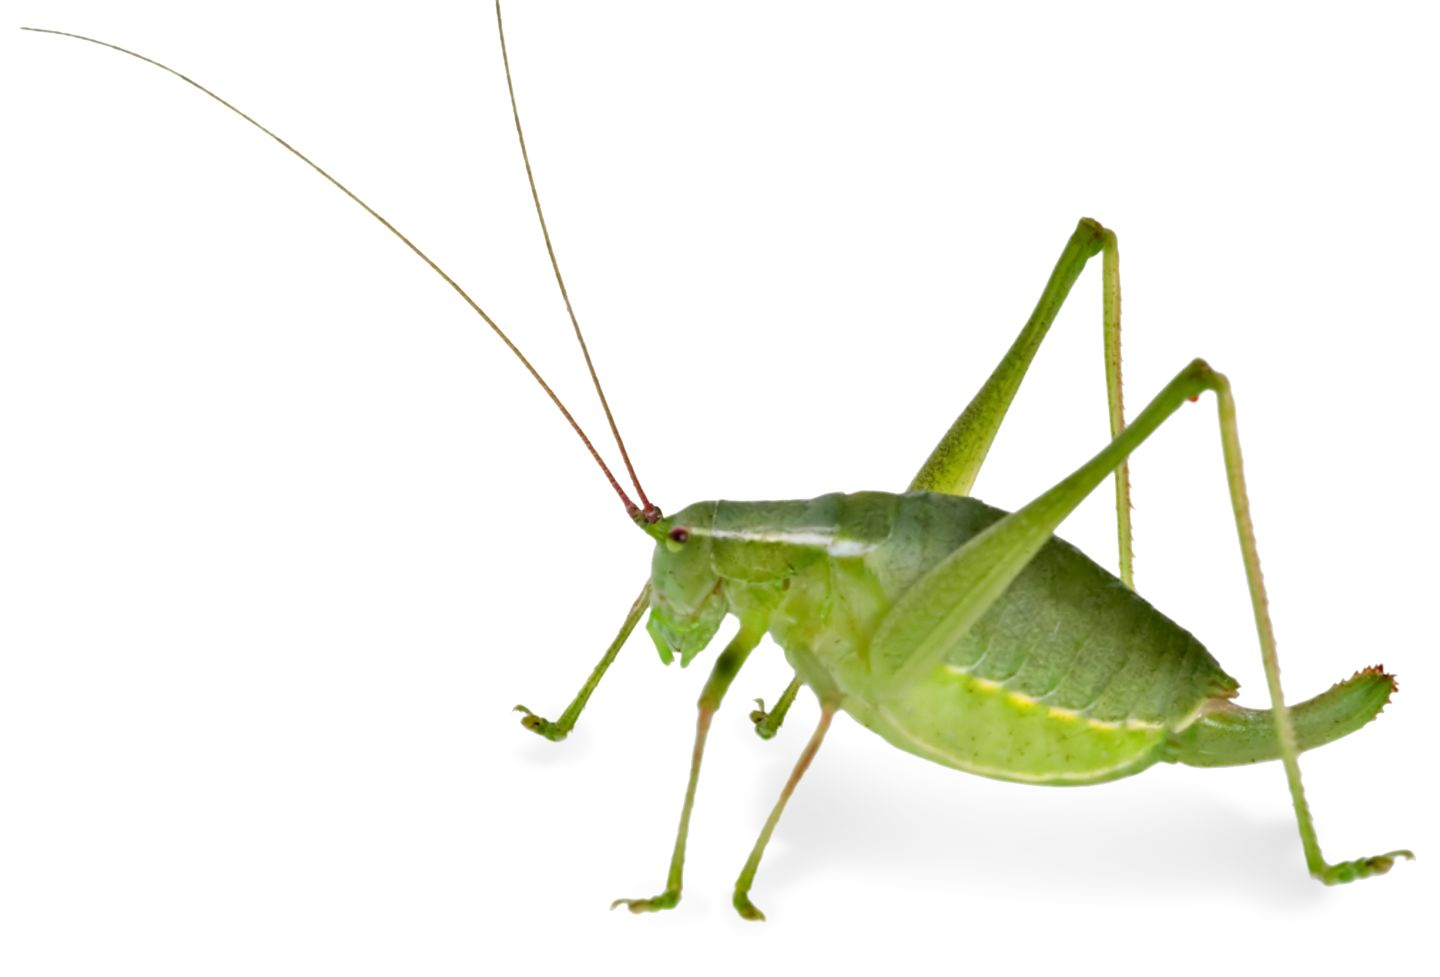 Grasshopper Facts | Cricket Facts For Kids | DK Find Out